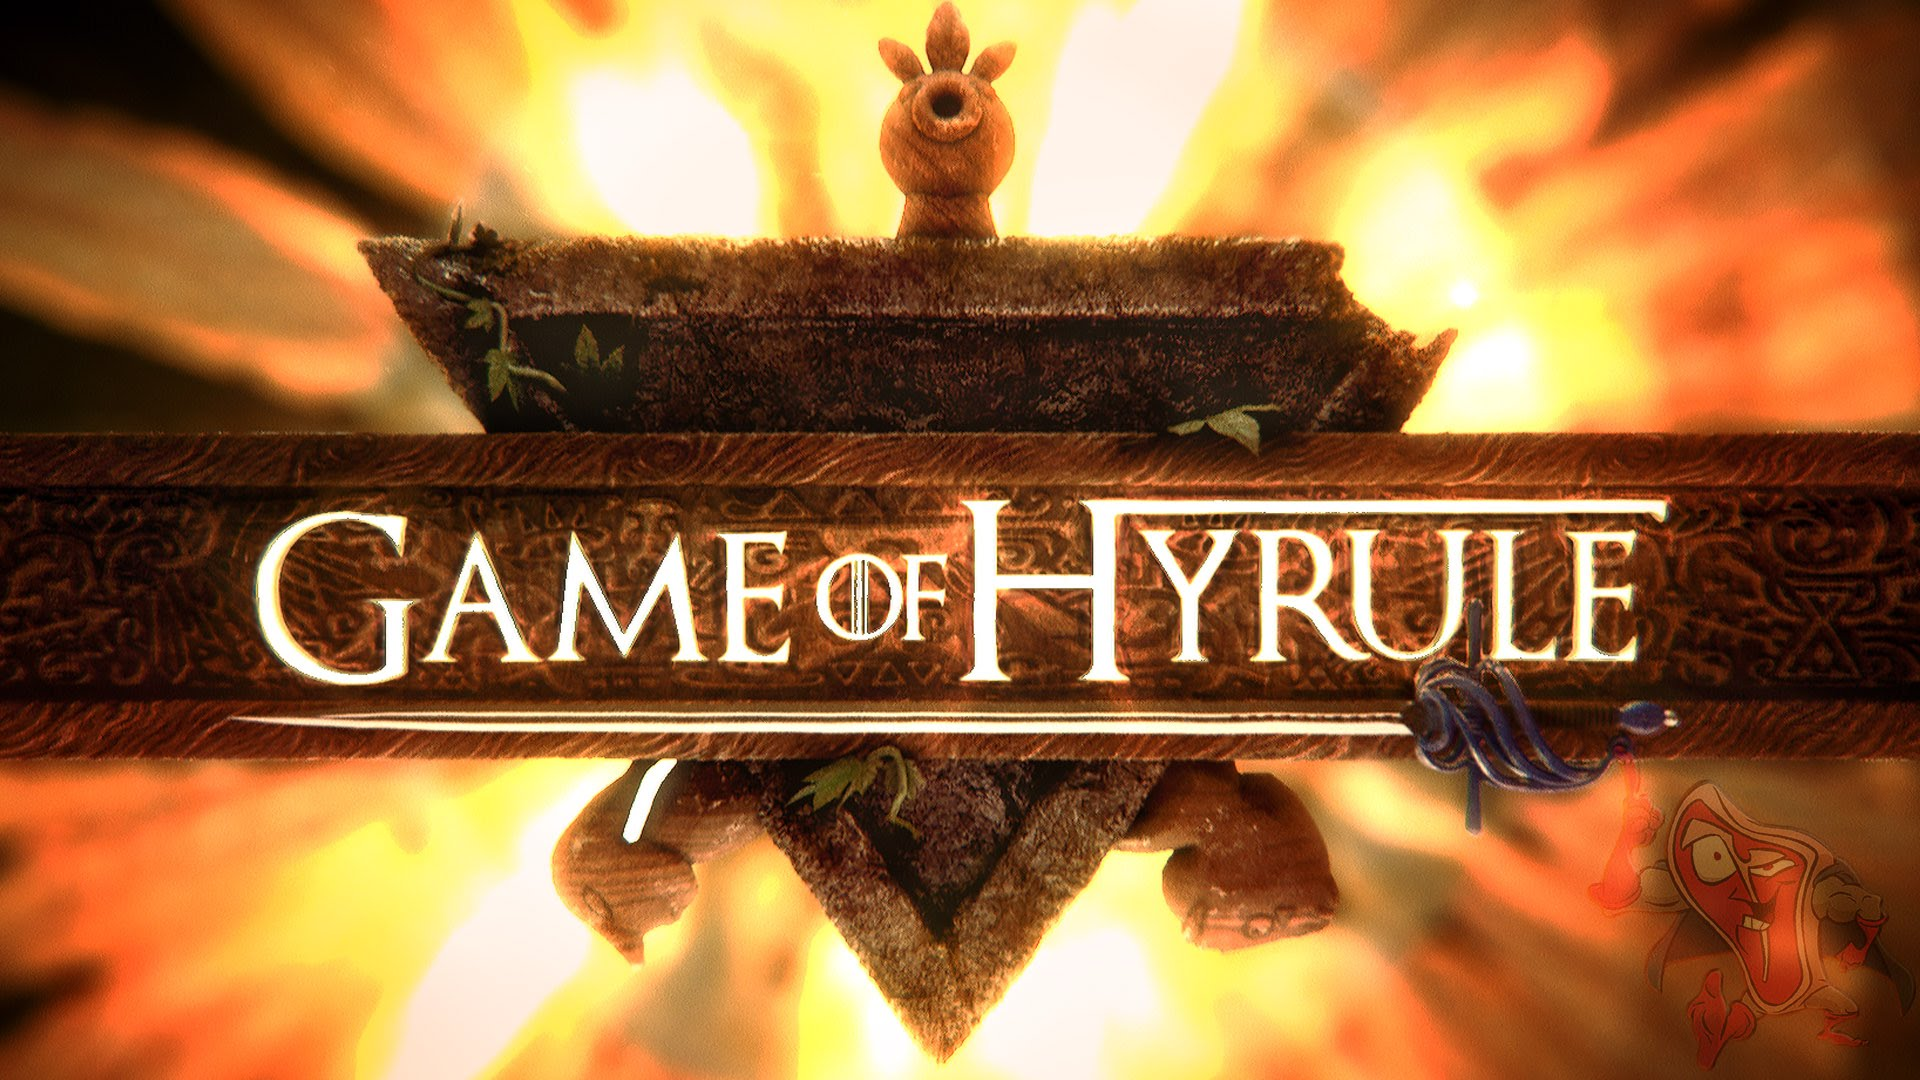 Intro: GAME OF HYRULE